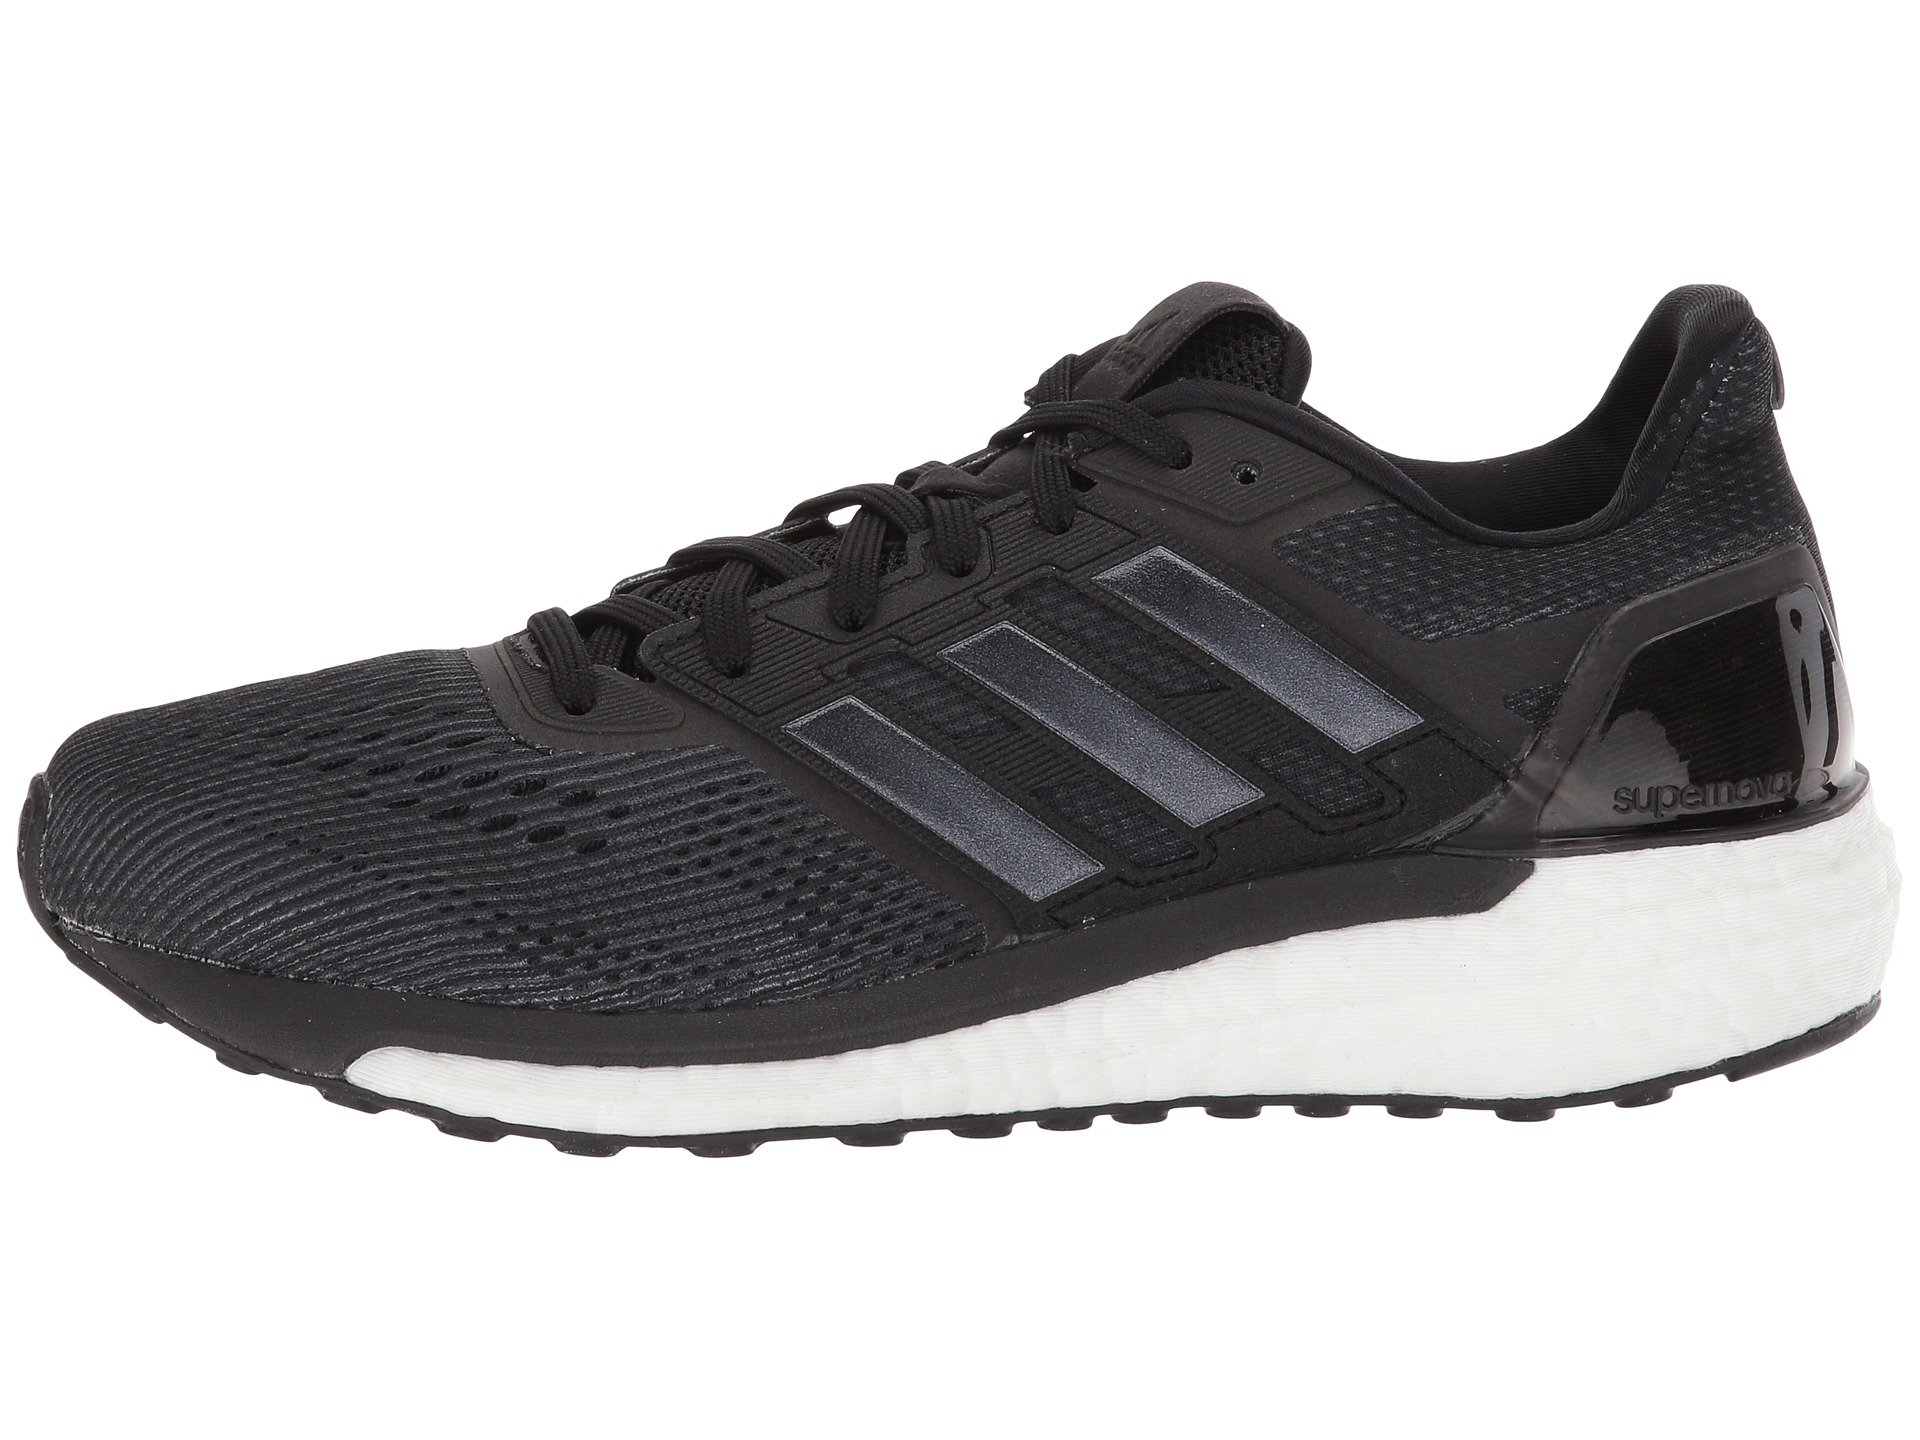 9f84abef546 Best Adidas Running Shoes